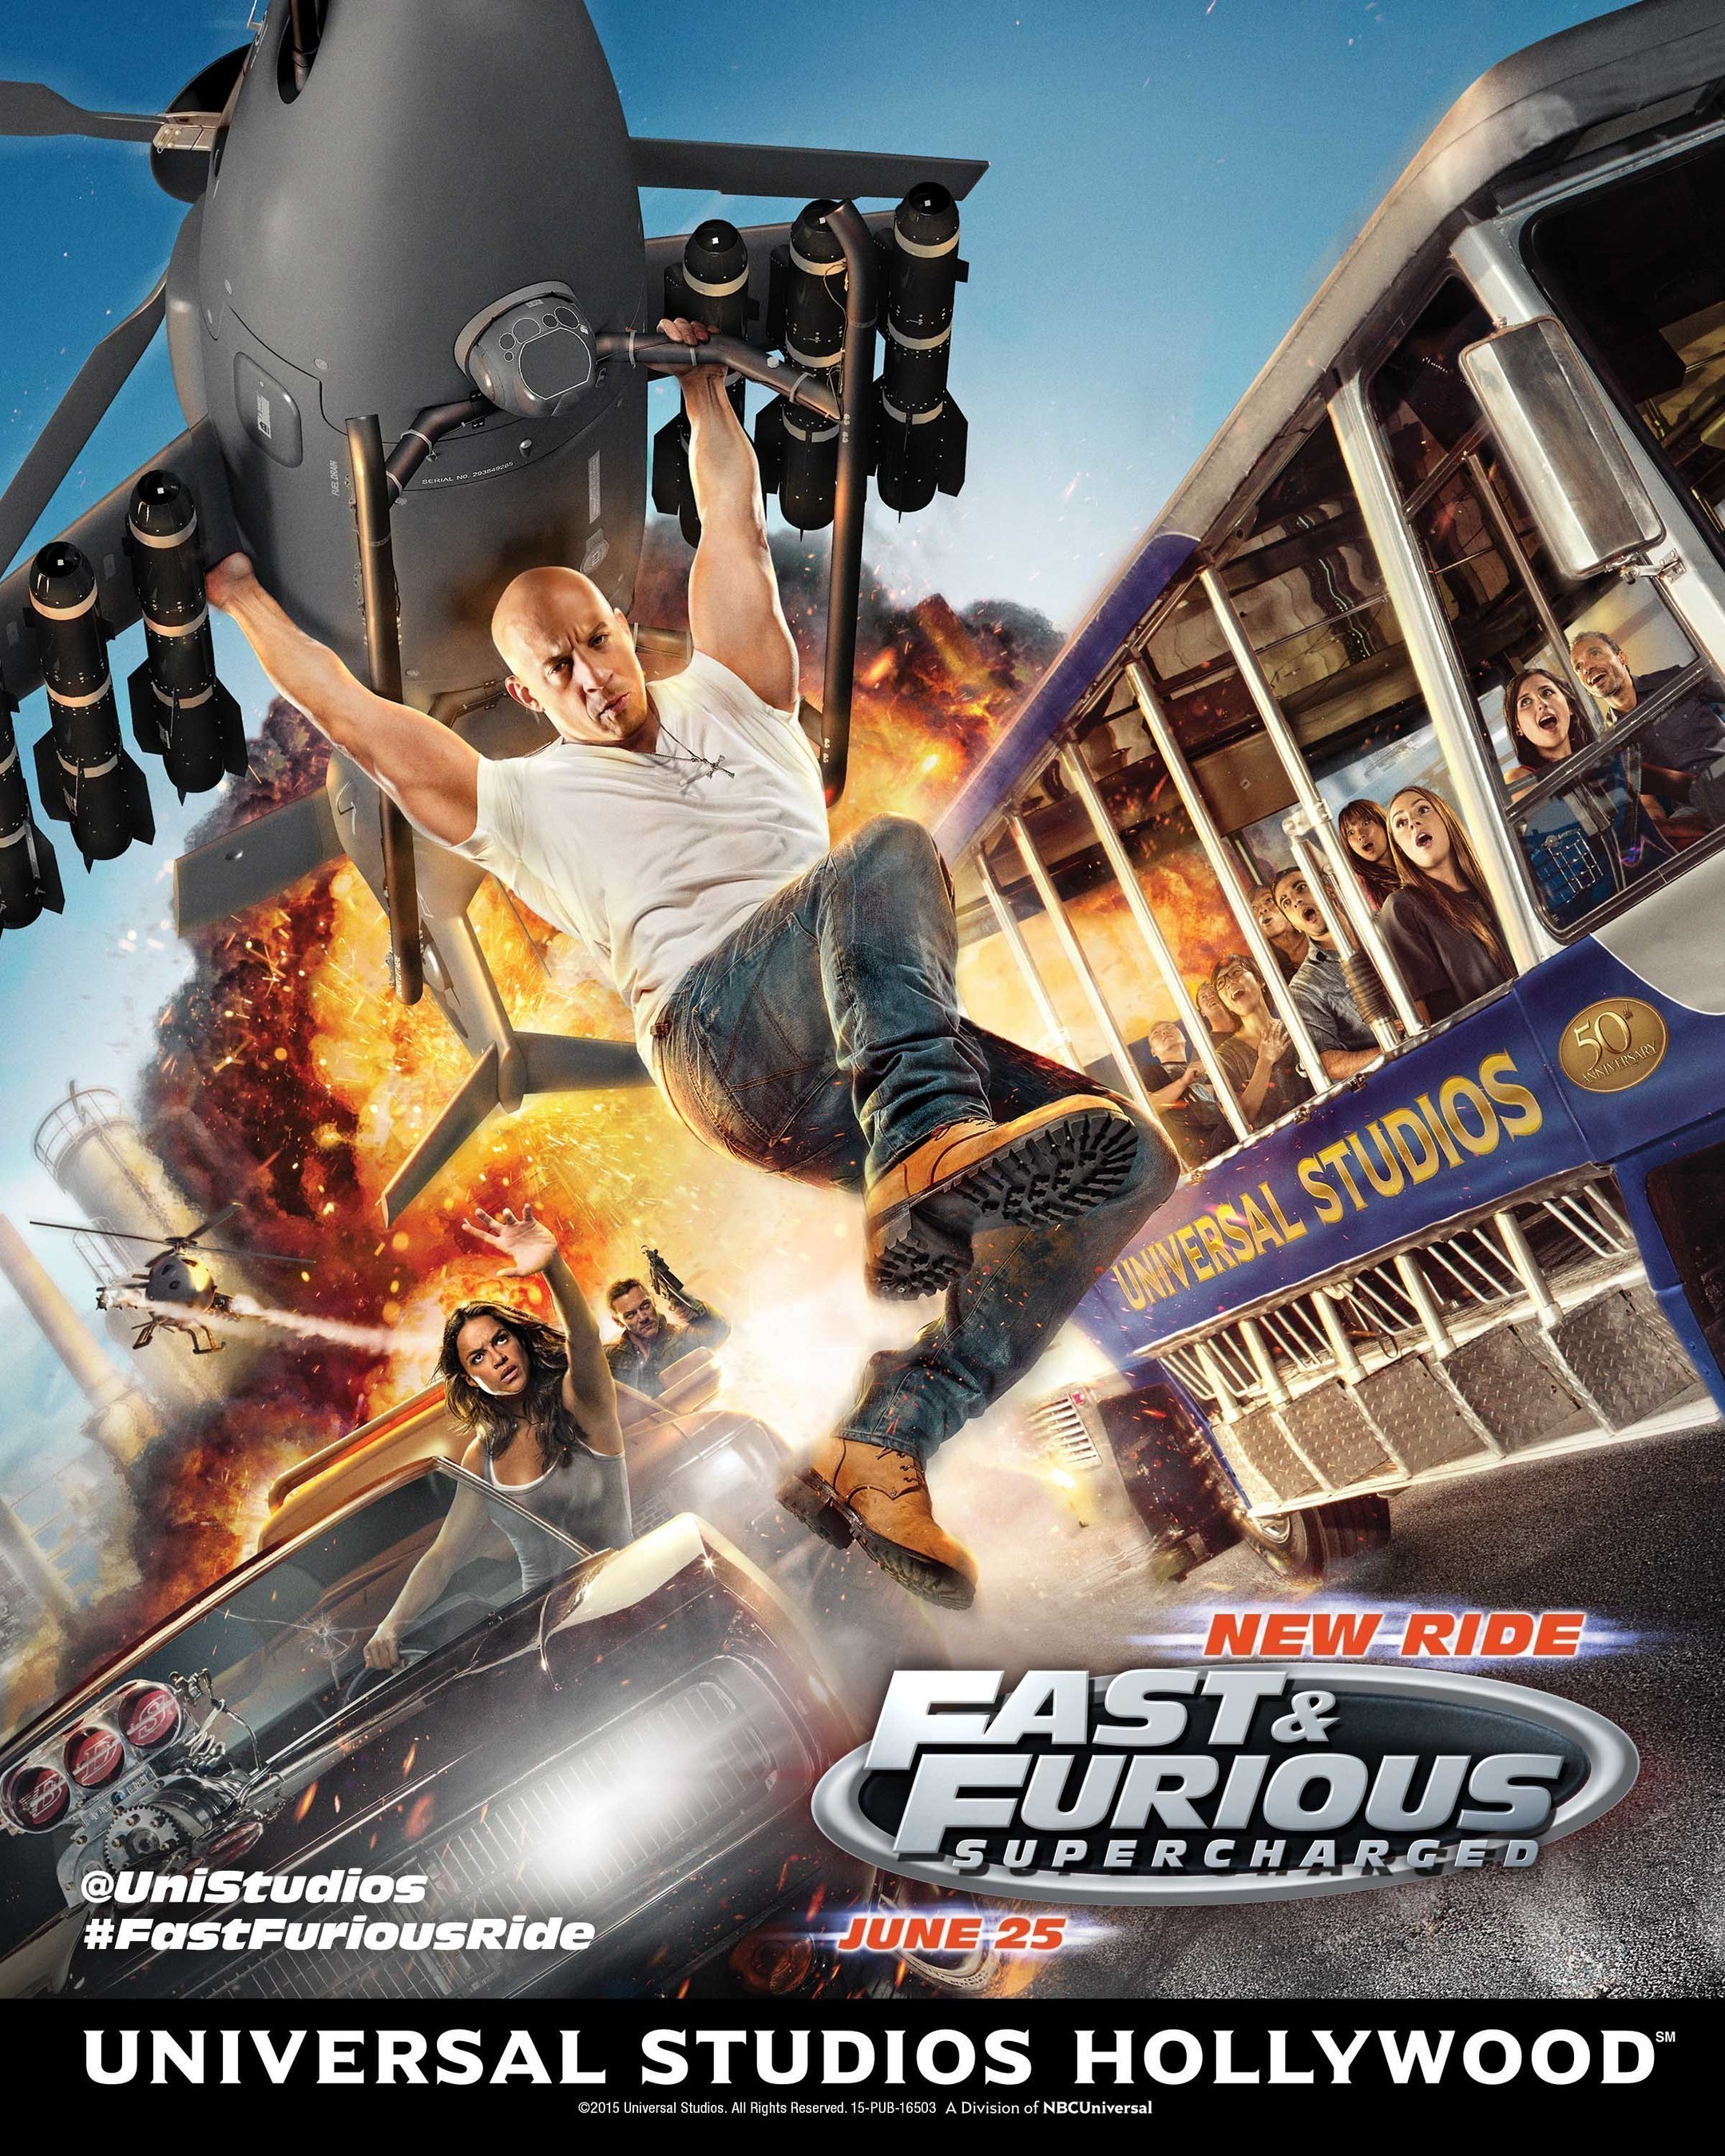 """Universal Studios Hollywood shifts into high gear for the June 25 opening of """"Fast & Furious-Supercharged"""" with the debut of an original poster image featuring the characters racing alongside a Studio Tour tram."""